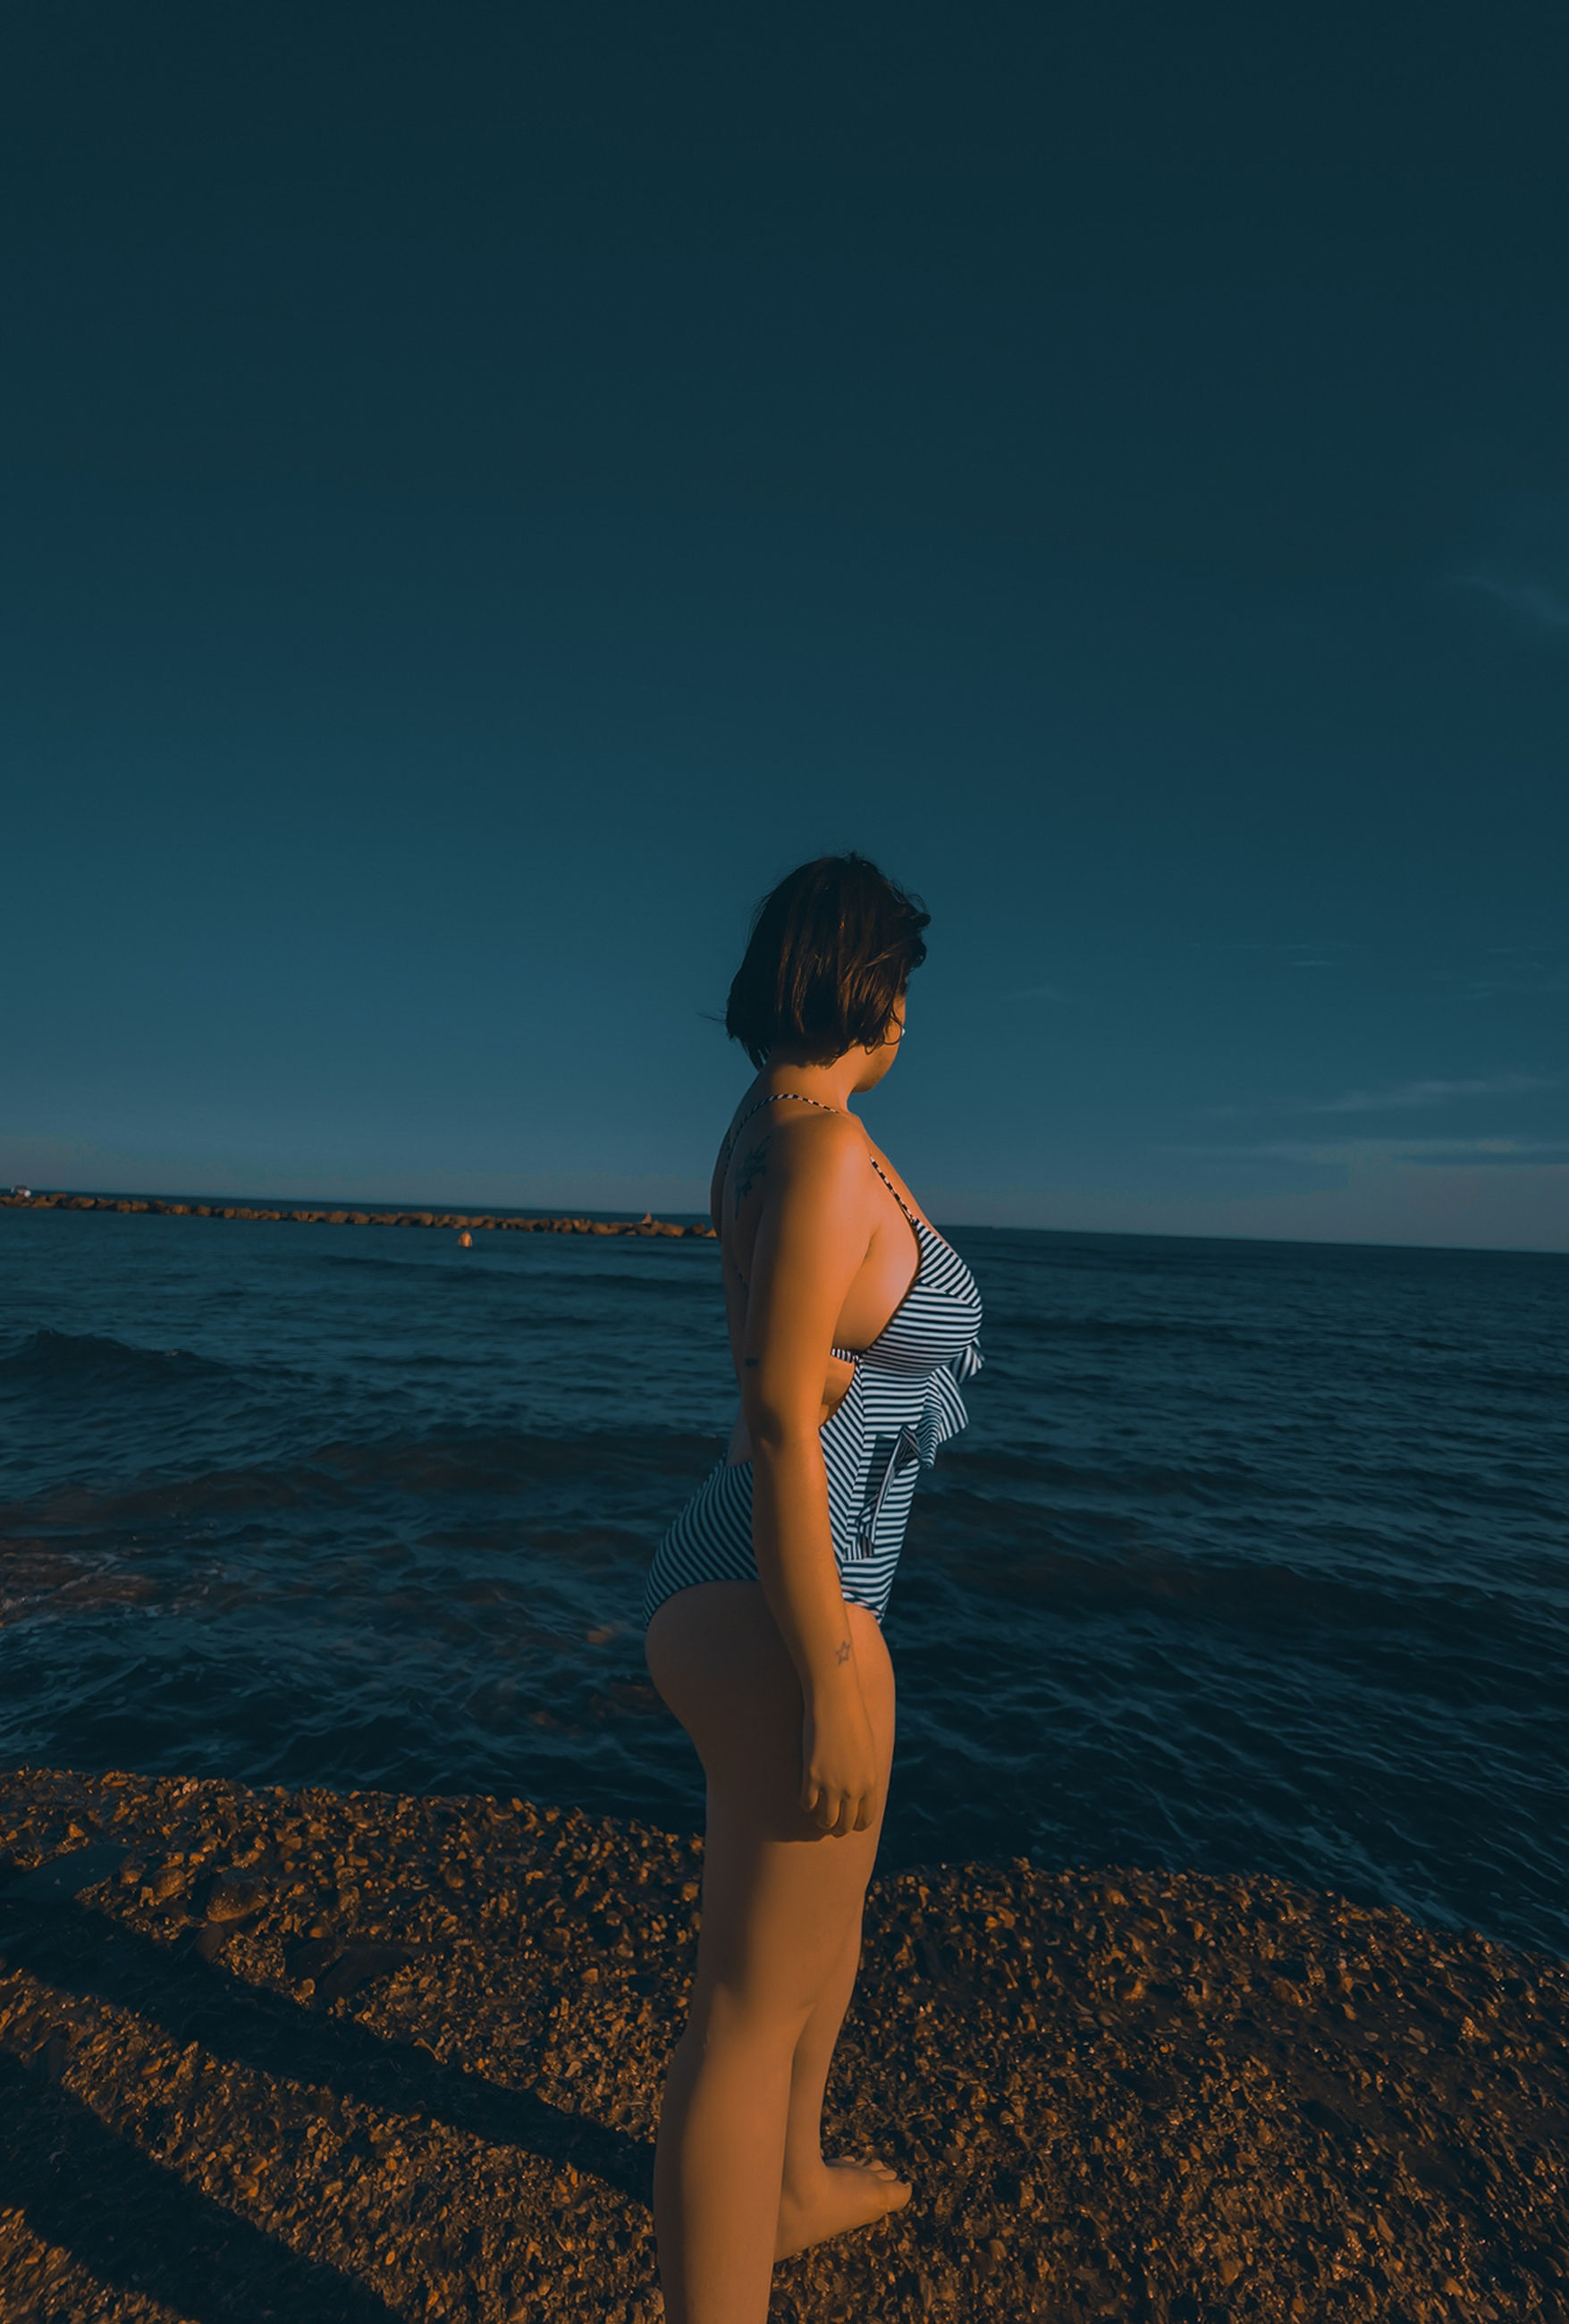 sea, water, one person, sky, horizon, land, beach, horizon over water, adult, women, nature, young adult, beauty in nature, ocean, standing, clothing, side view, full length, tranquility, sunlight, sunset, vacation, scenics - nature, holiday, hairstyle, trip, tranquil scene, lifestyles, leisure activity, blue, copy space, solitude, wave, person, outdoors, female, looking, contemplation, fashion, idyllic, relaxation, clear sky, summer, long hair, dusk, swimwear, sand